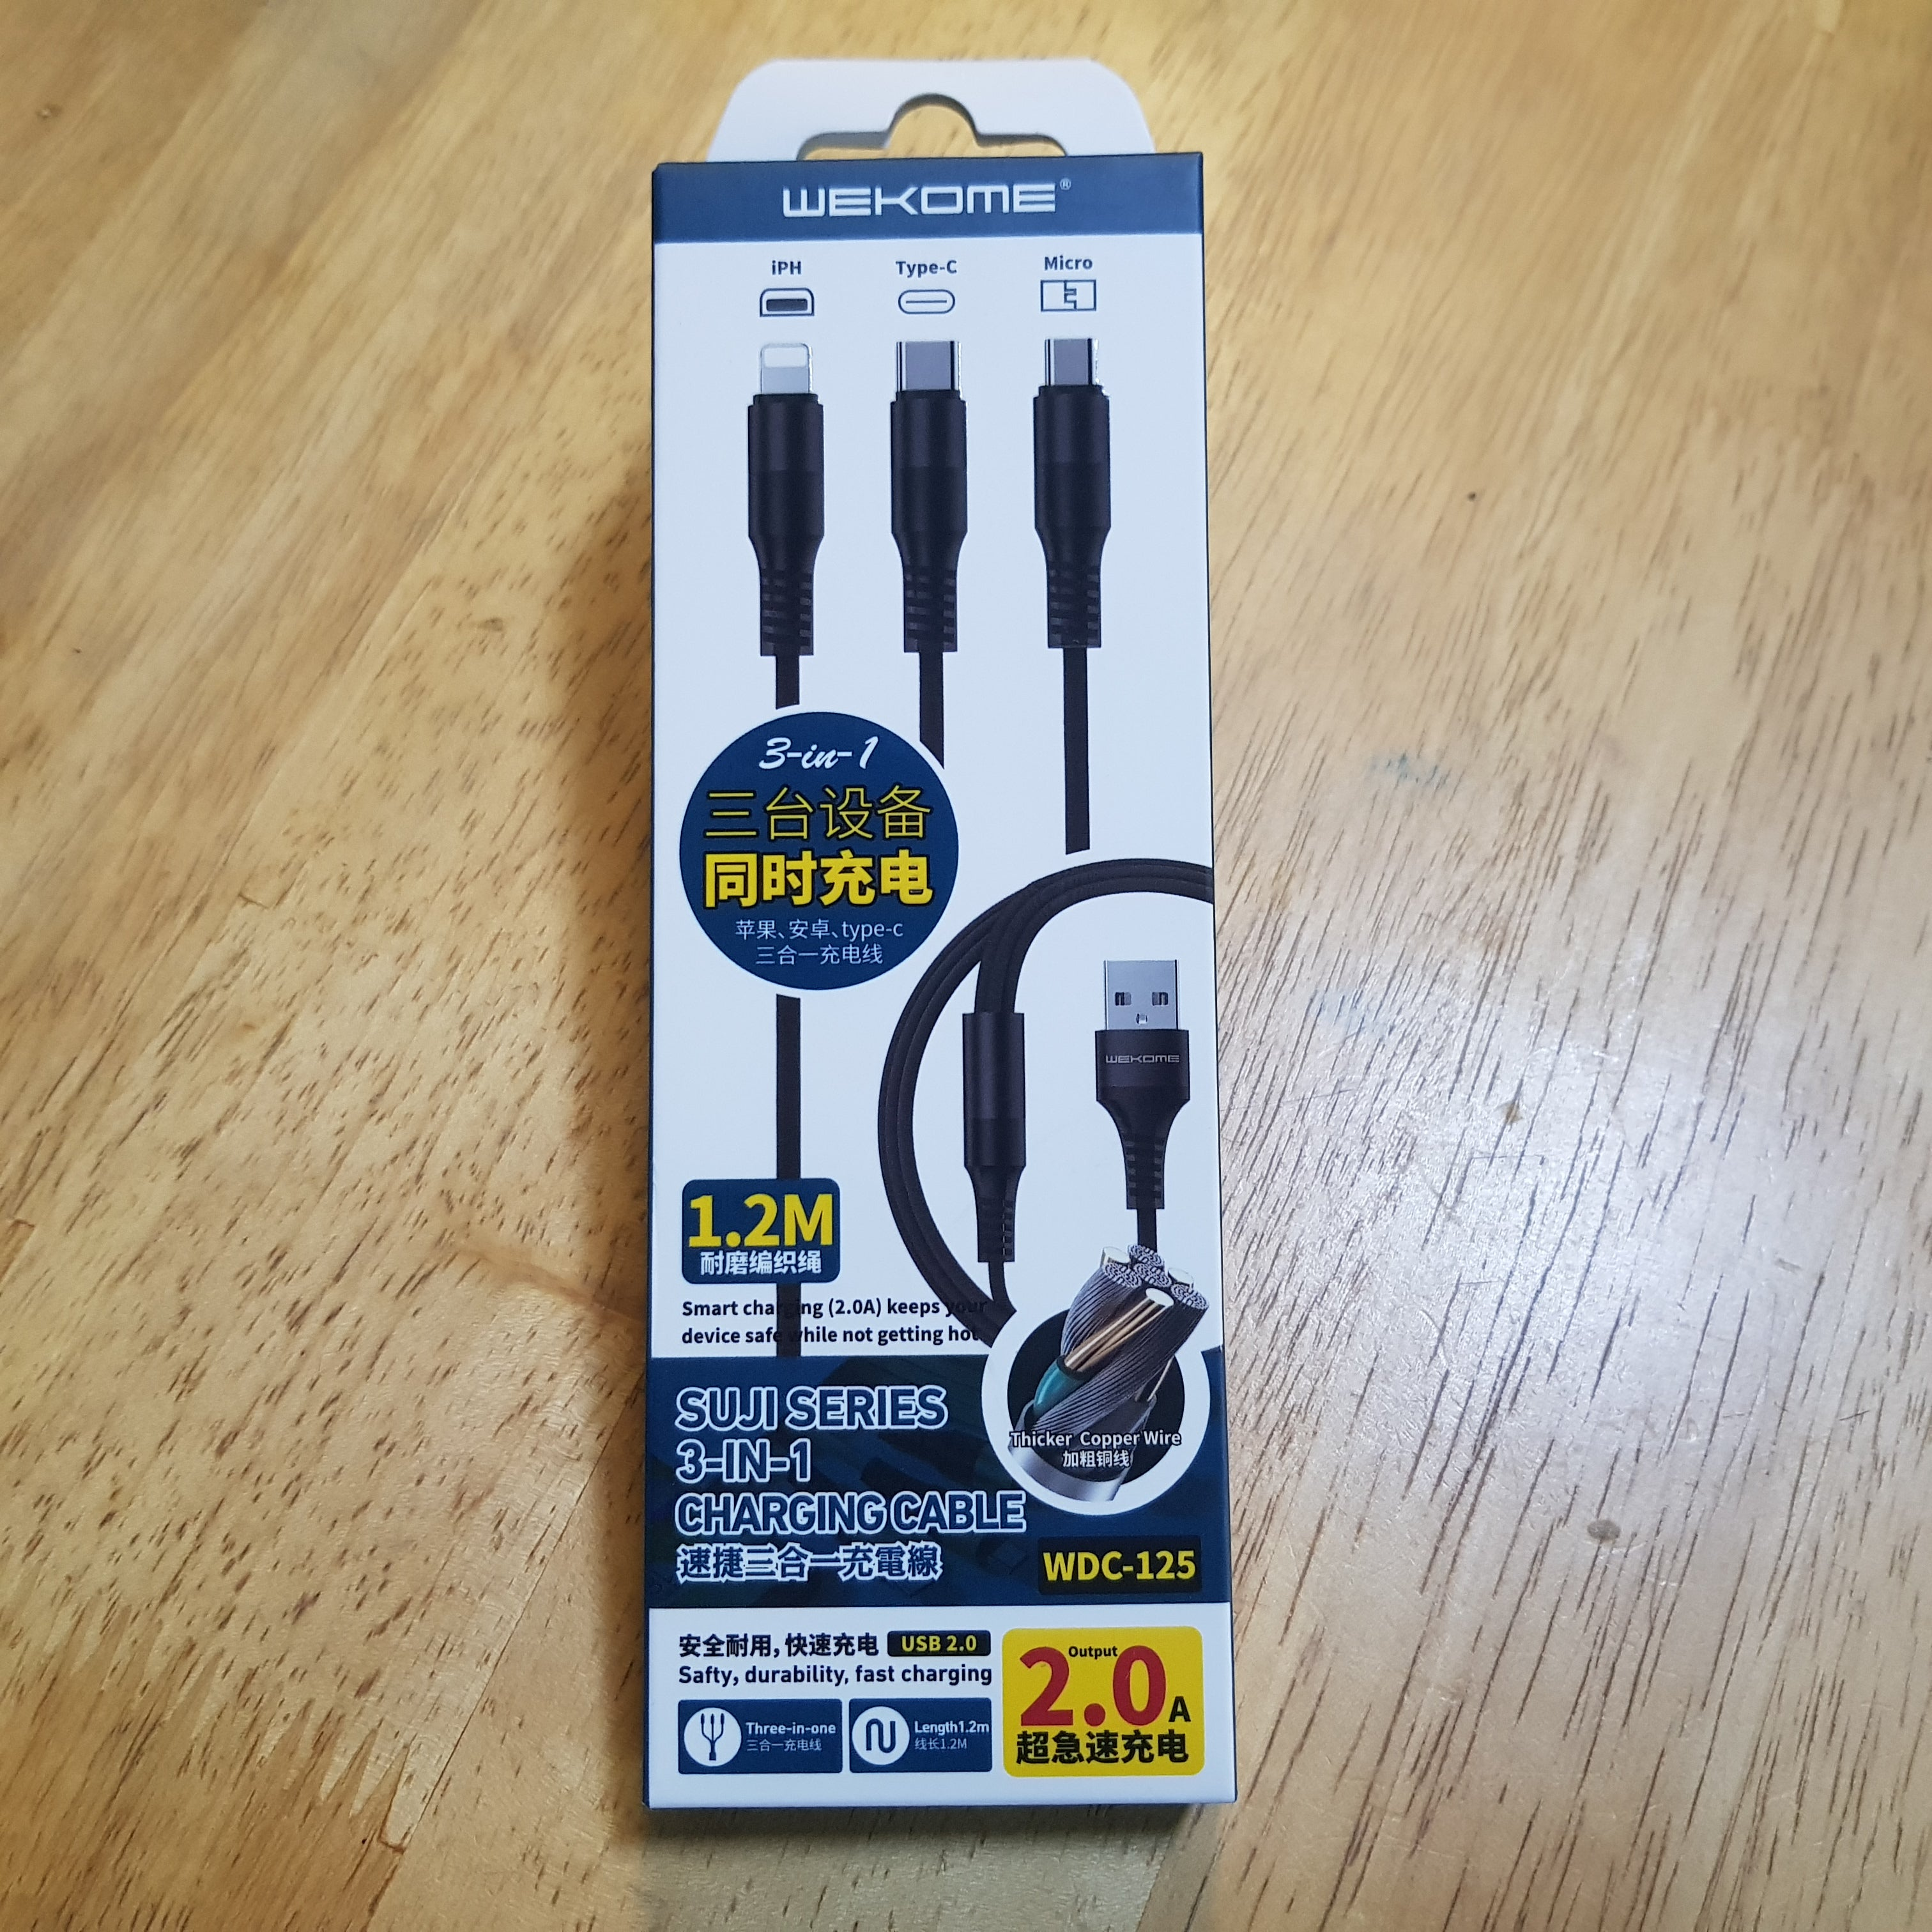 WDC-125 Suji Series 3-in-1 Charging Cable WK Design